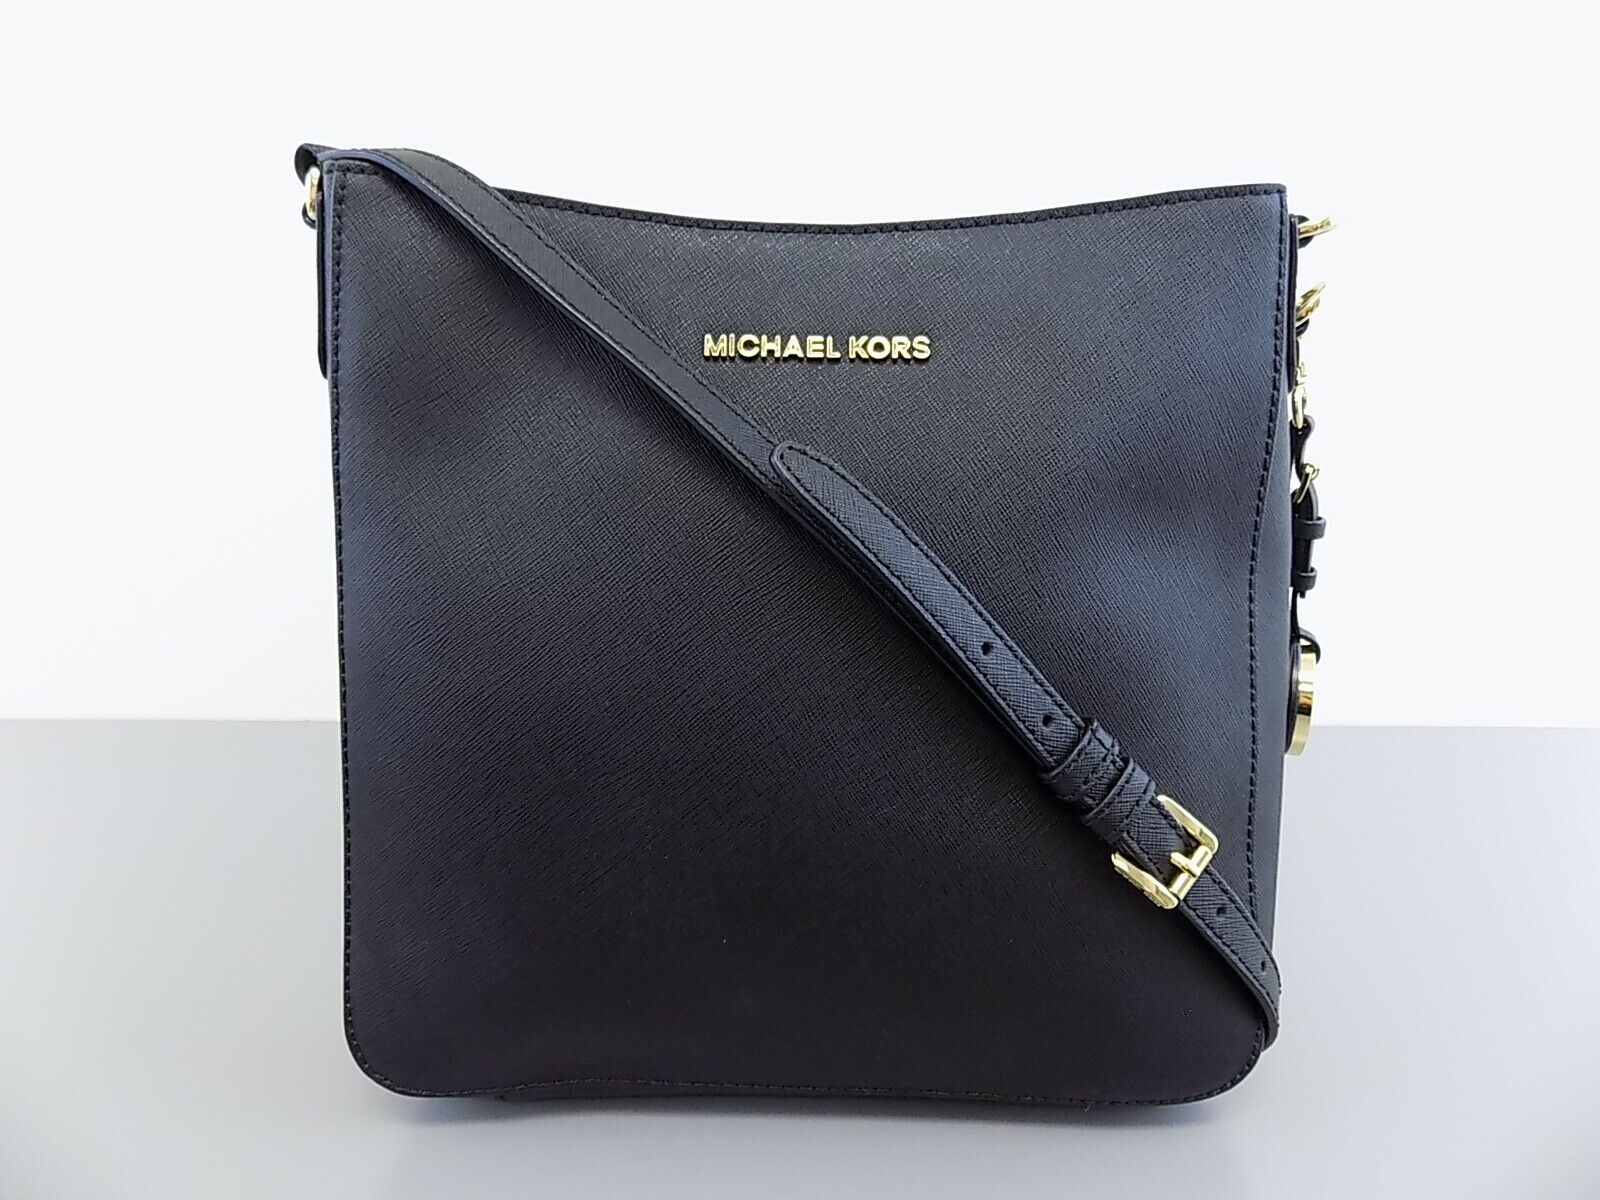 533ede6e0e7bd9 UPC 885949909986 product image for Pre-owned Michael Kors Jet Set Travel  Messenger Saffiano Leather ...